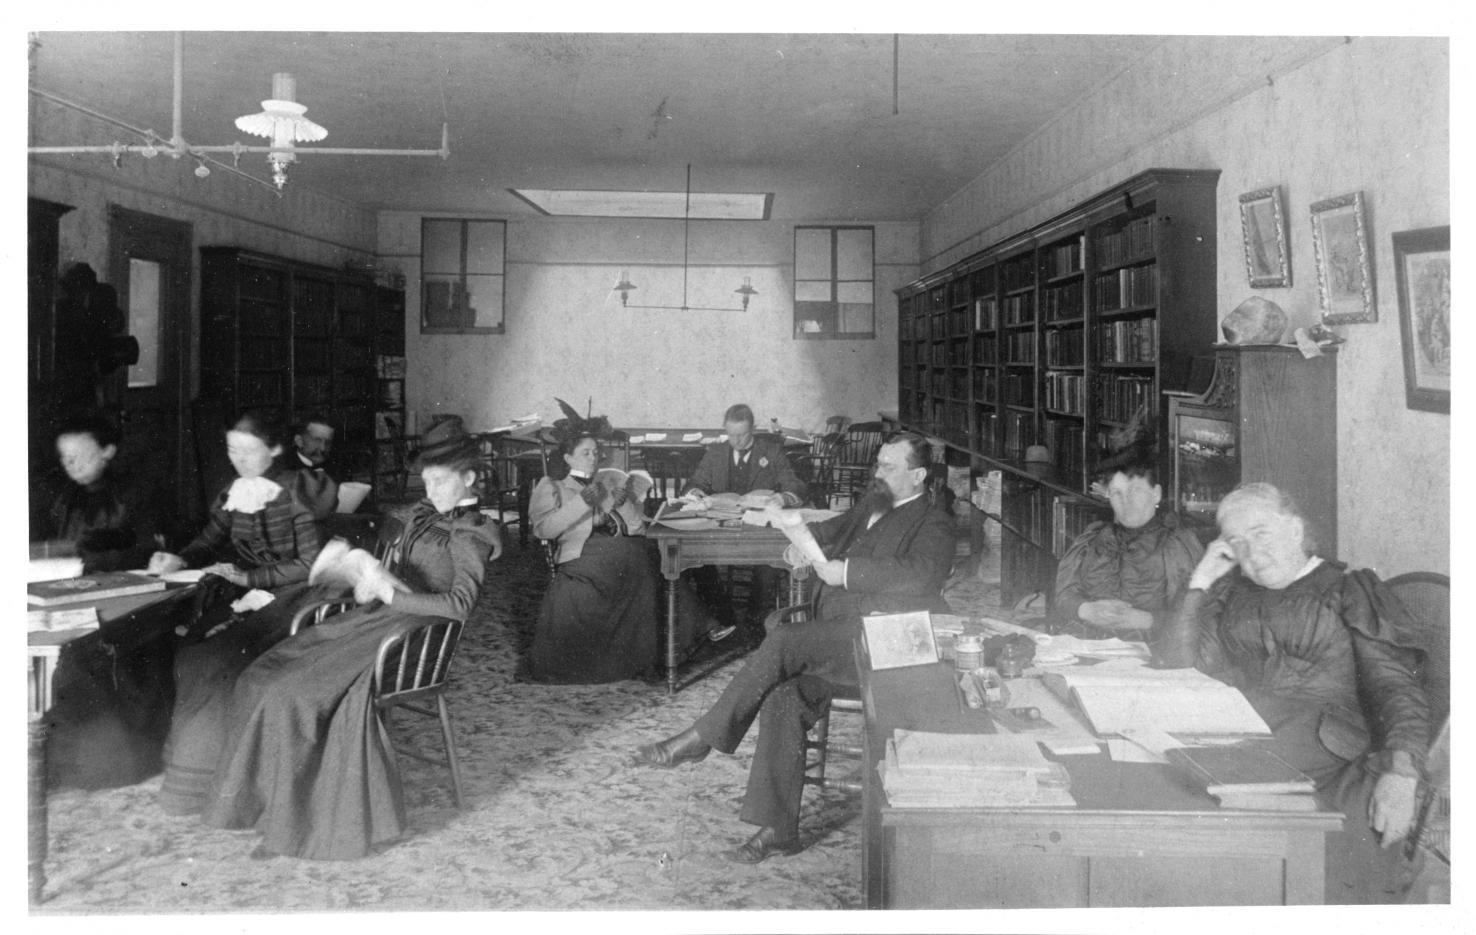 Association rooms about 1895